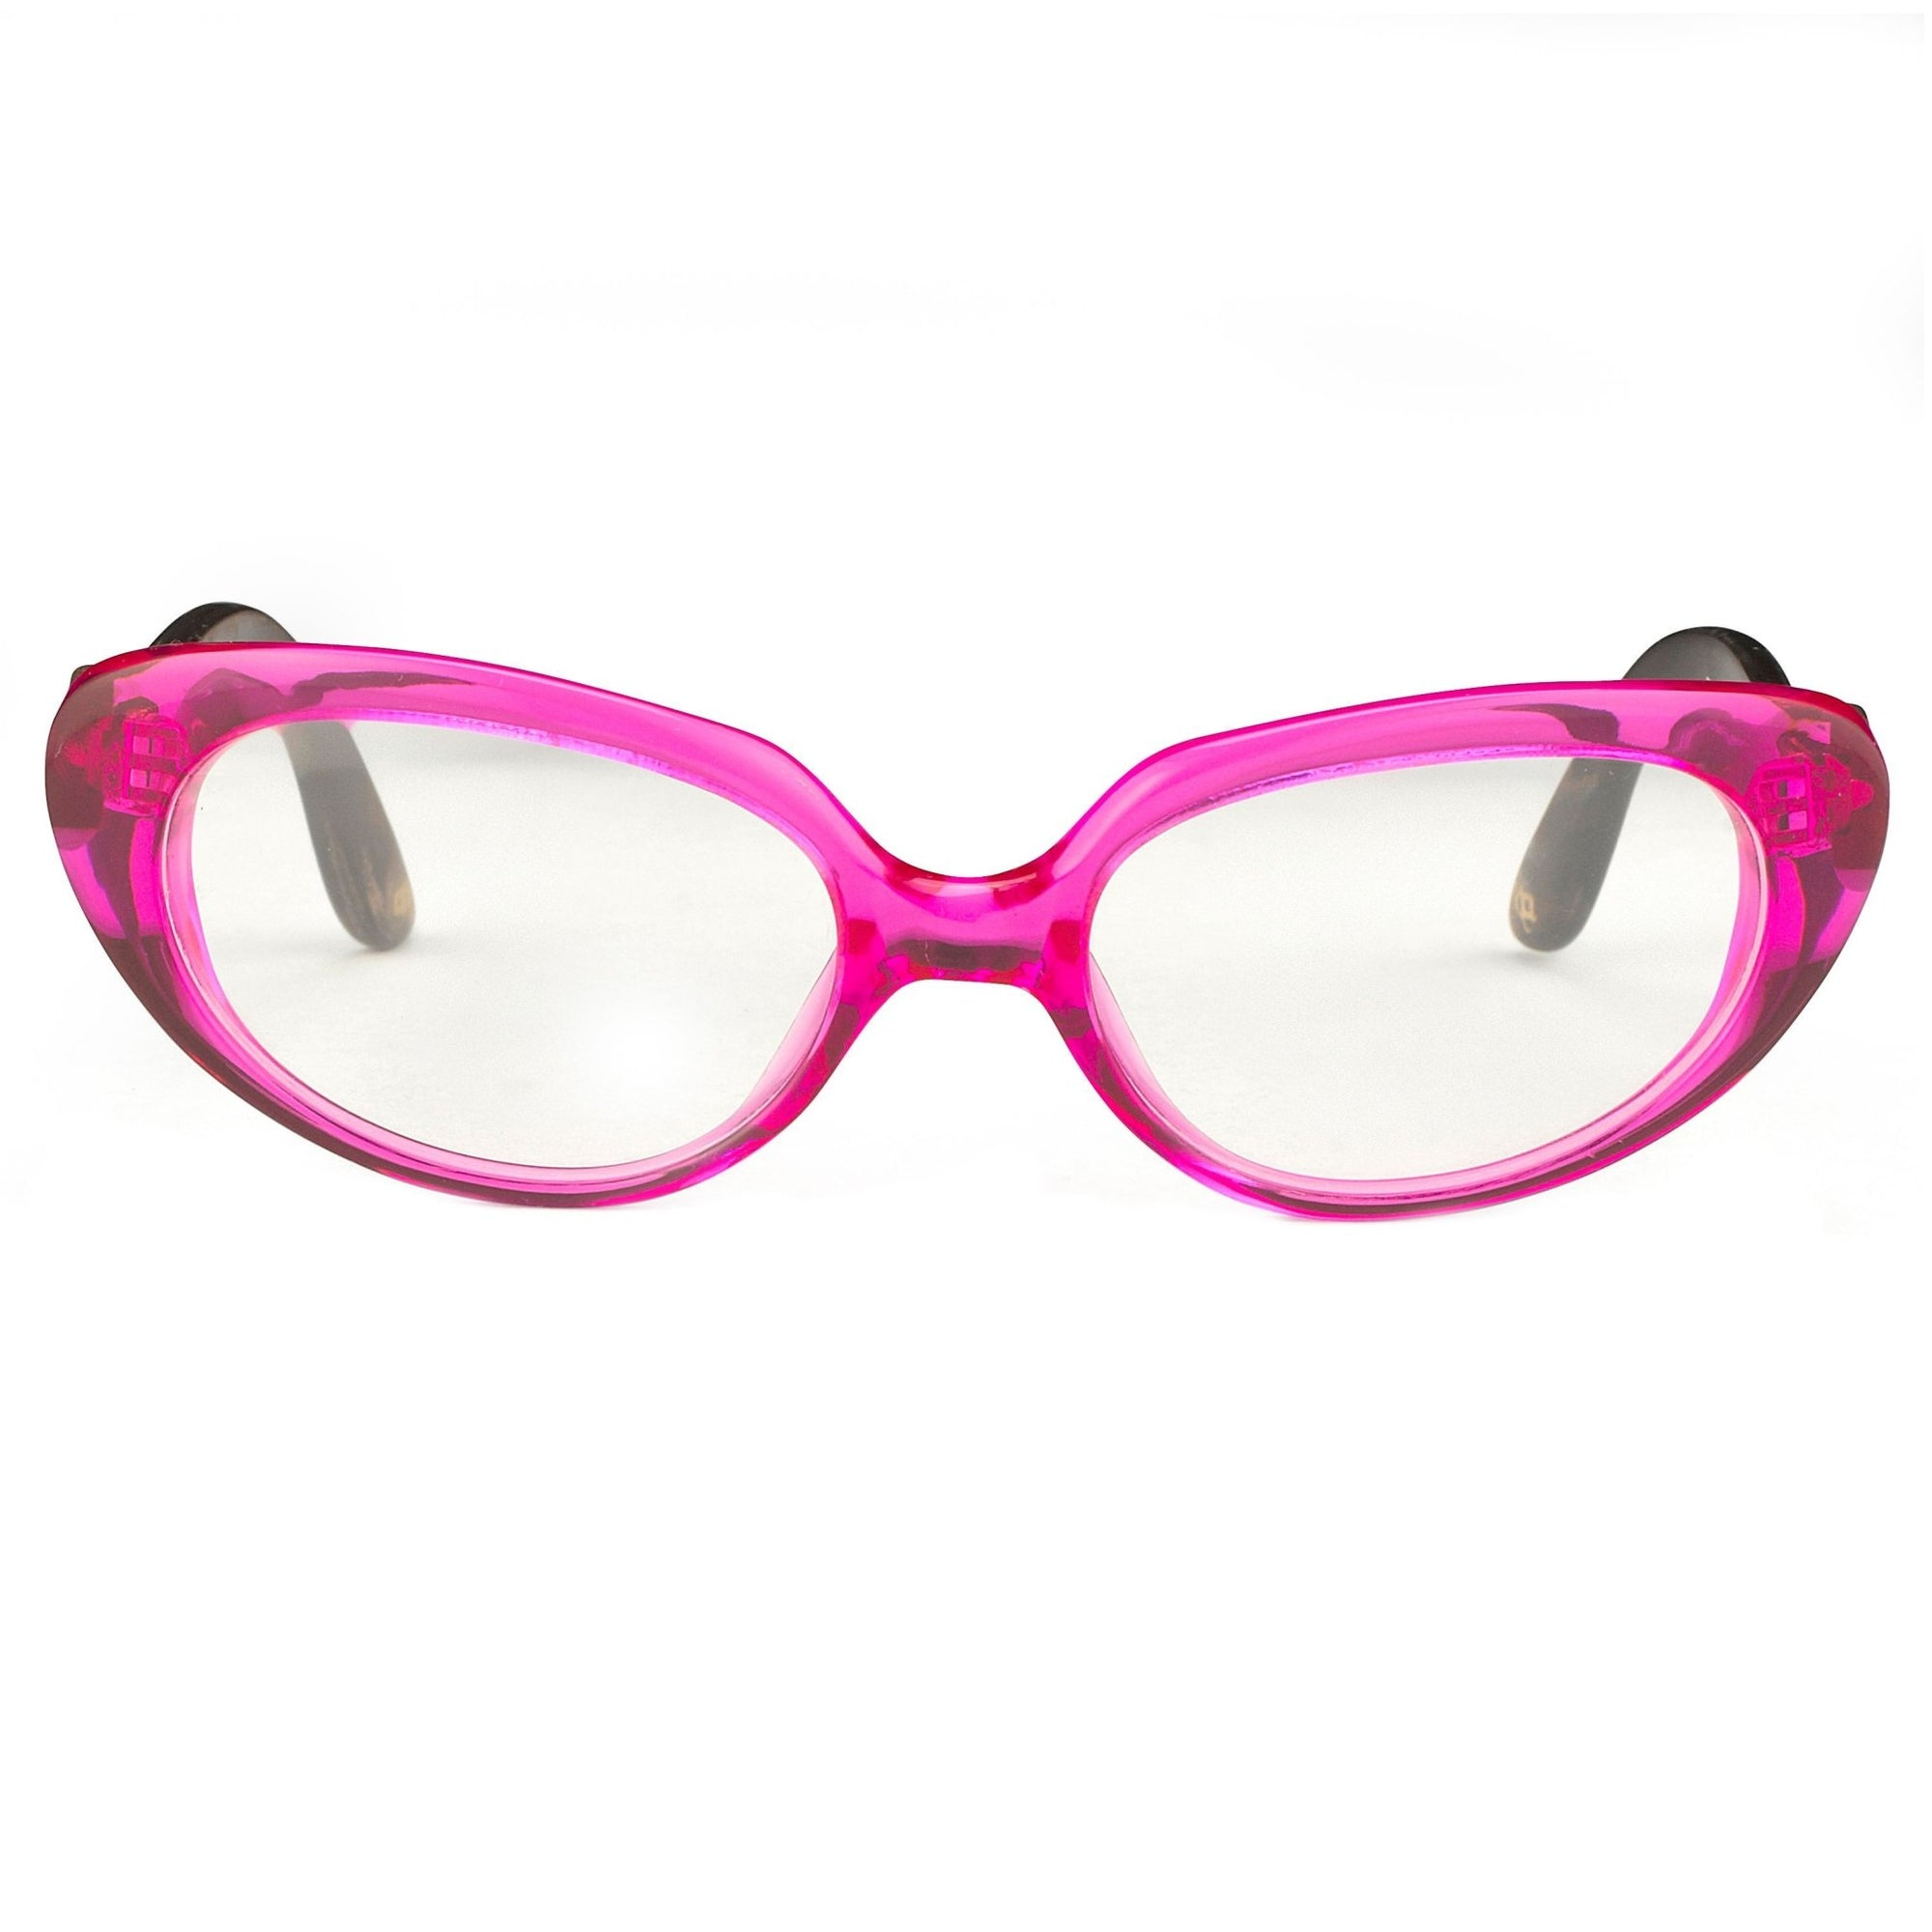 Oscar De La Renta Women Eyeglasses Sandalwood Cat Eye Pink and Clear Lenses - ODLR43C5OPT - Watches & Crystals